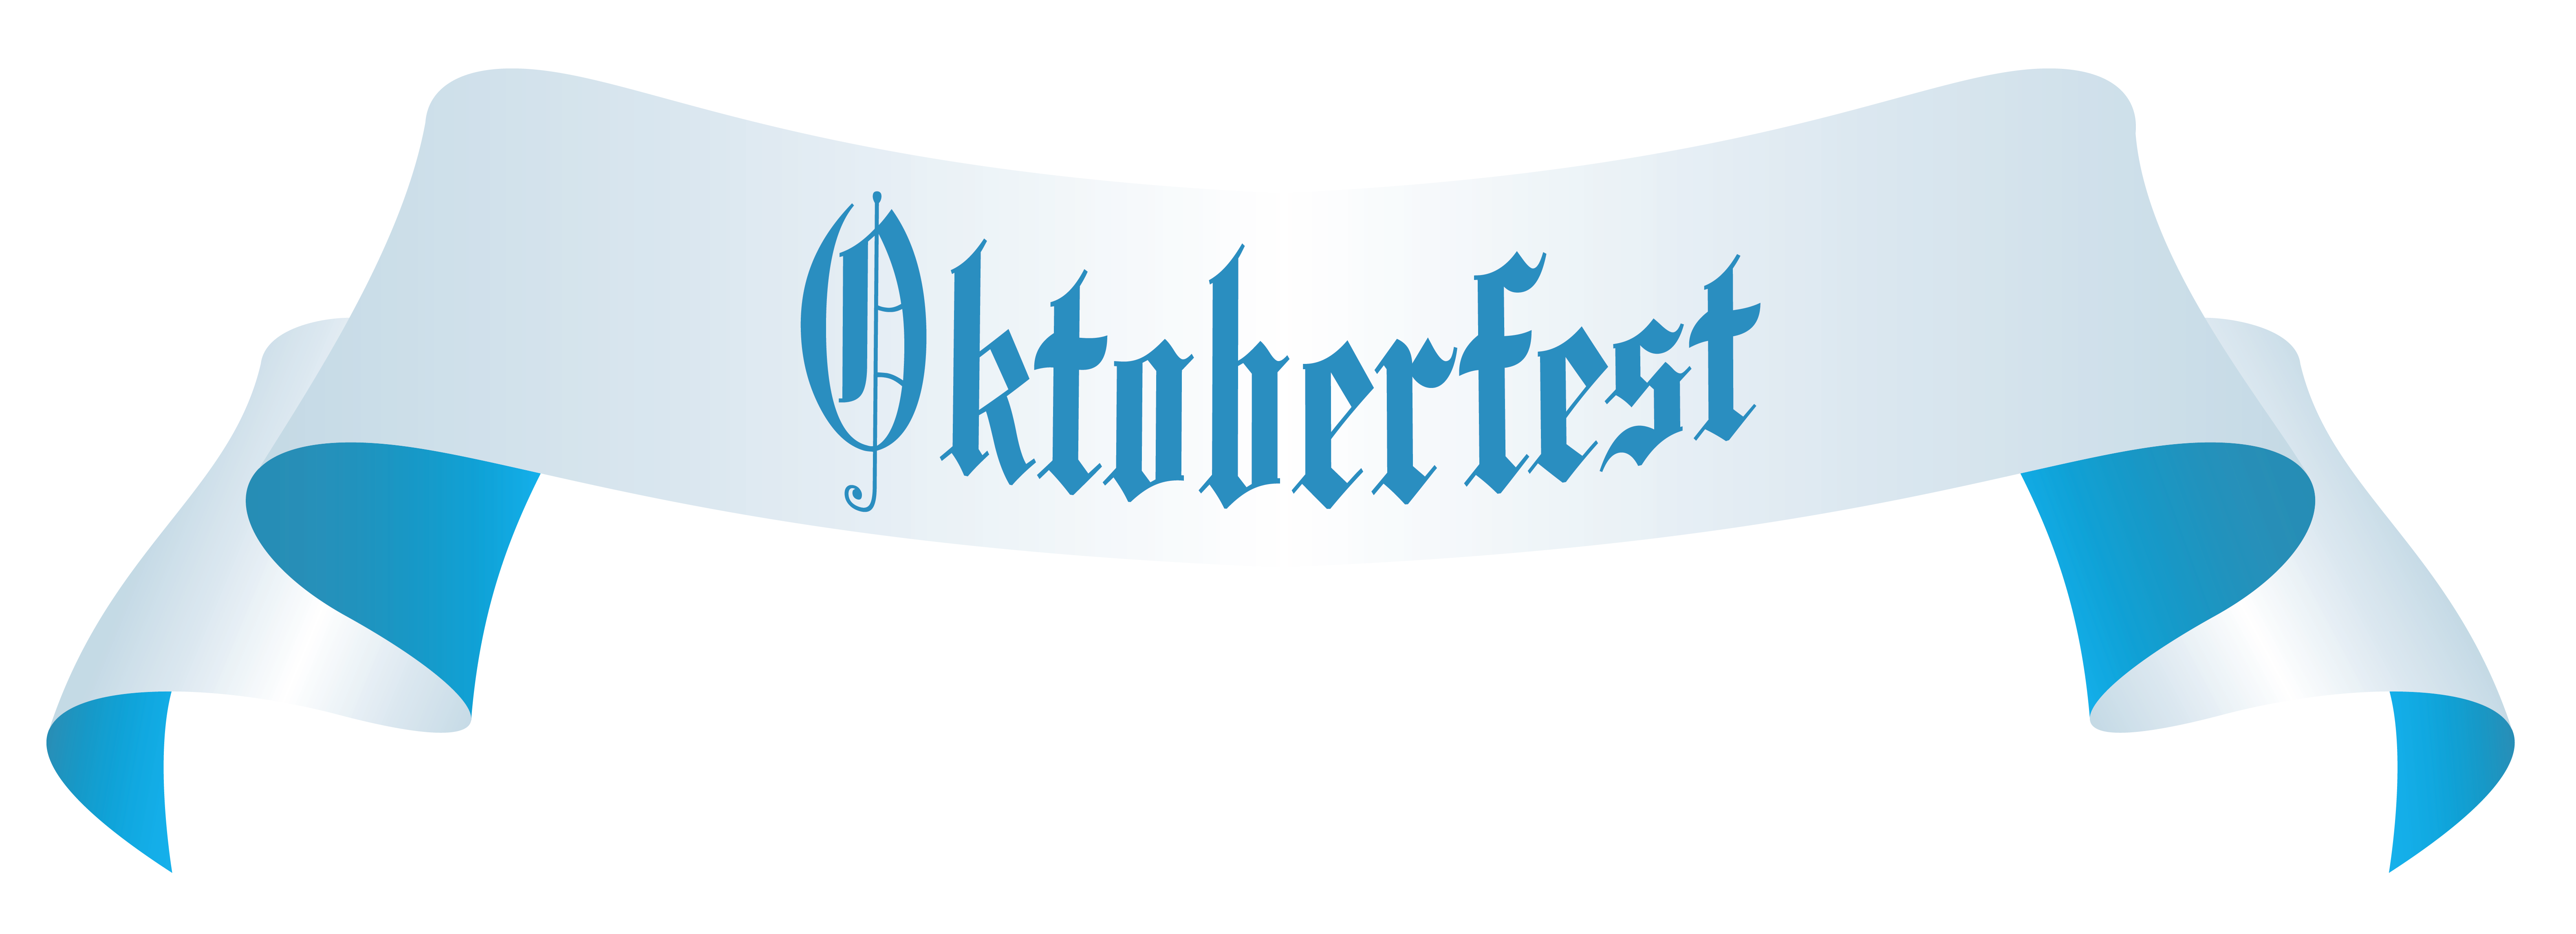 Oktoberfest png image gallery. Piano clipart banner